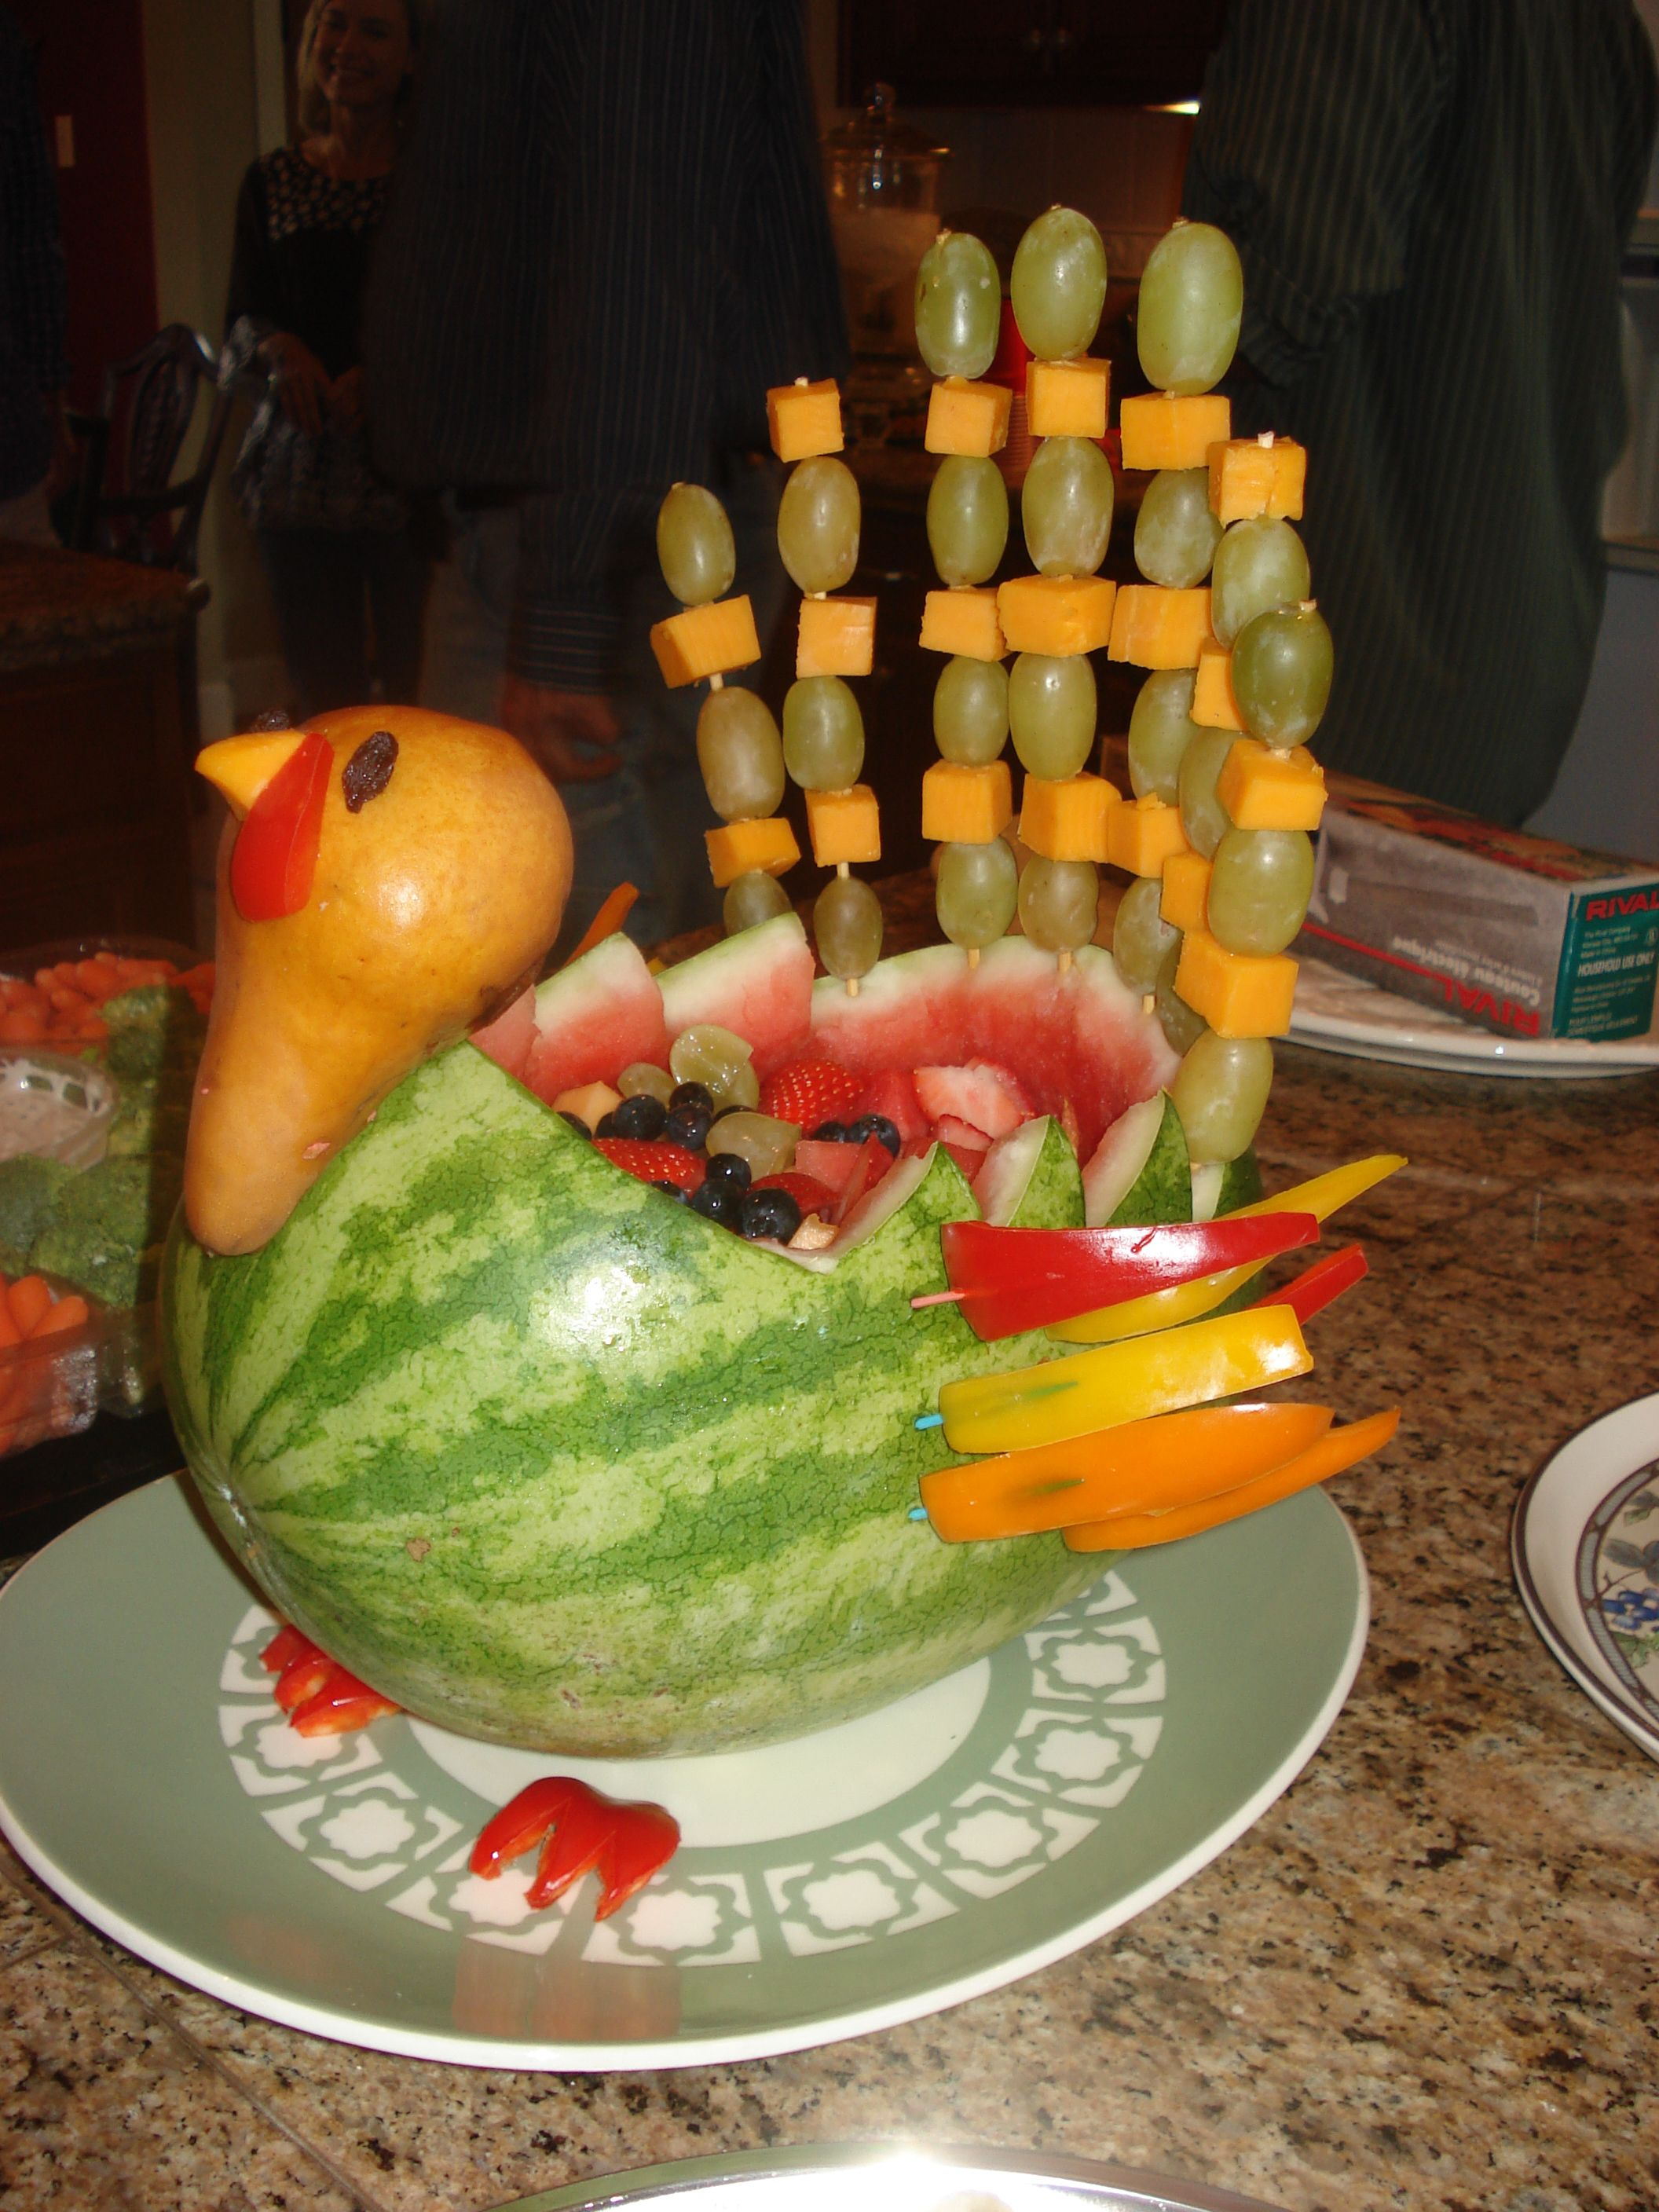 Hereus my fruit salad i made for thanksgiving itus a cross